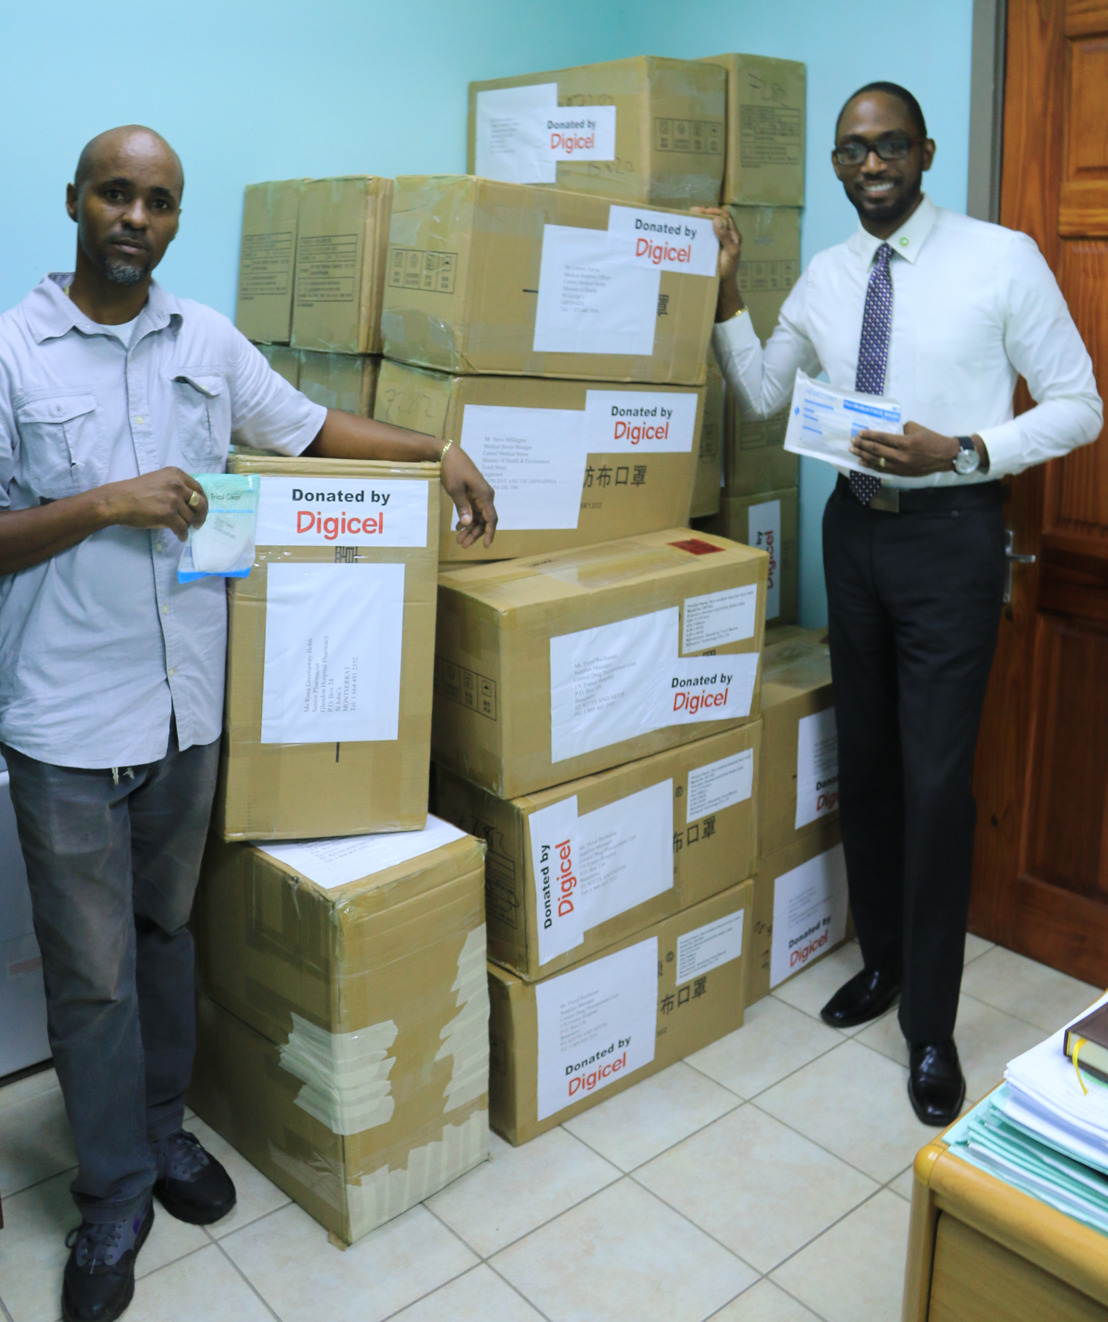 Digicel Donation Supports OECS Public Health Care Systems